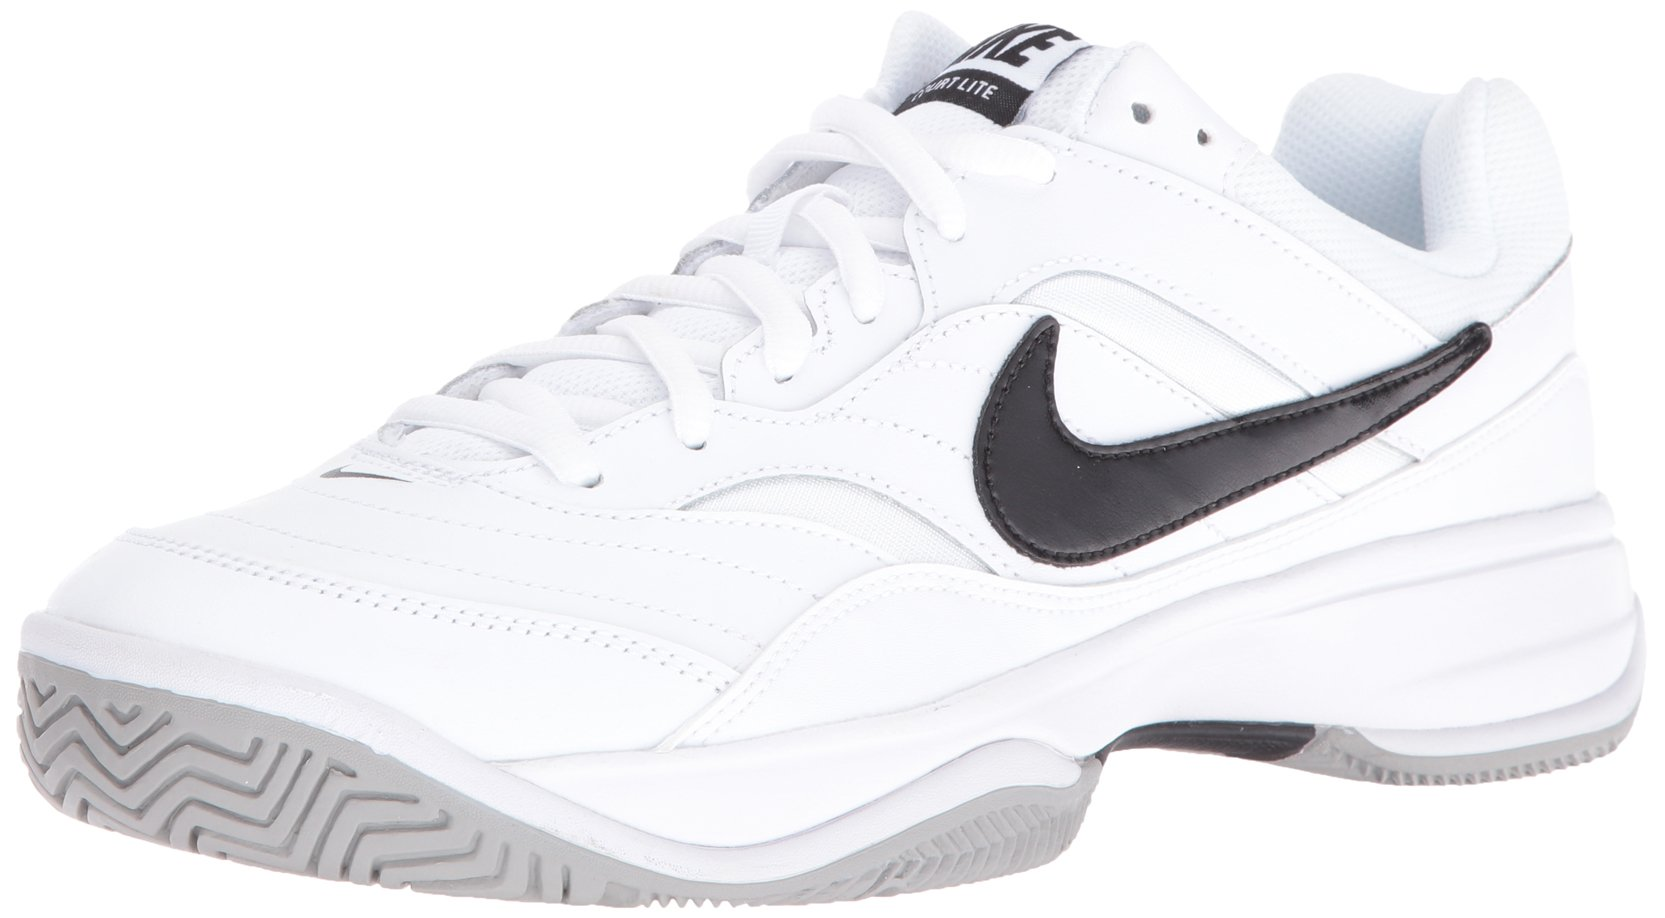 NIKE Men's Court Lite Tennis Shoe, White/Medium Grey/Black, 6.5 D(M) US by Nike (Image #1)